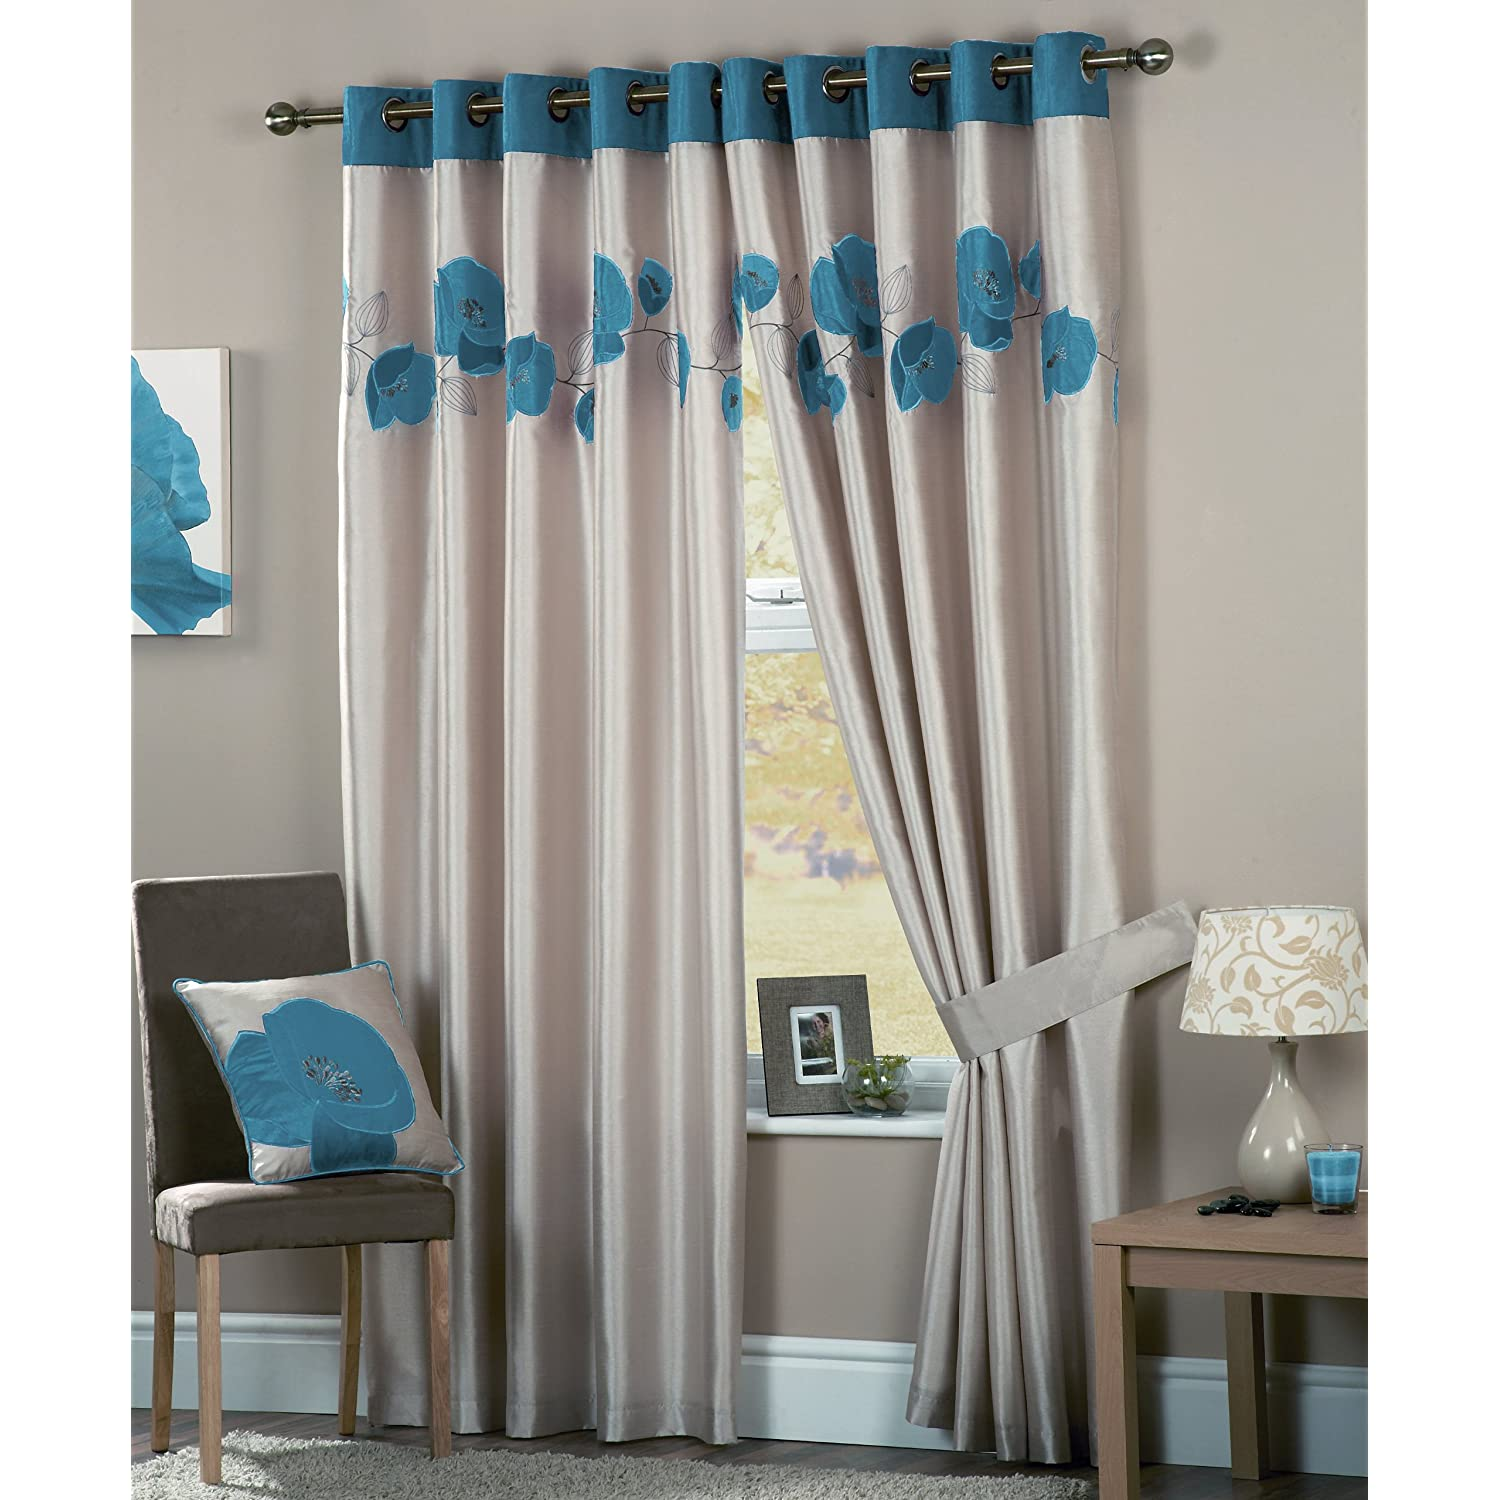 ... DANIELLE EYELET LINED TEAL BEDROOM LIVING ROOM CURTAINS 66X90cm | eBay